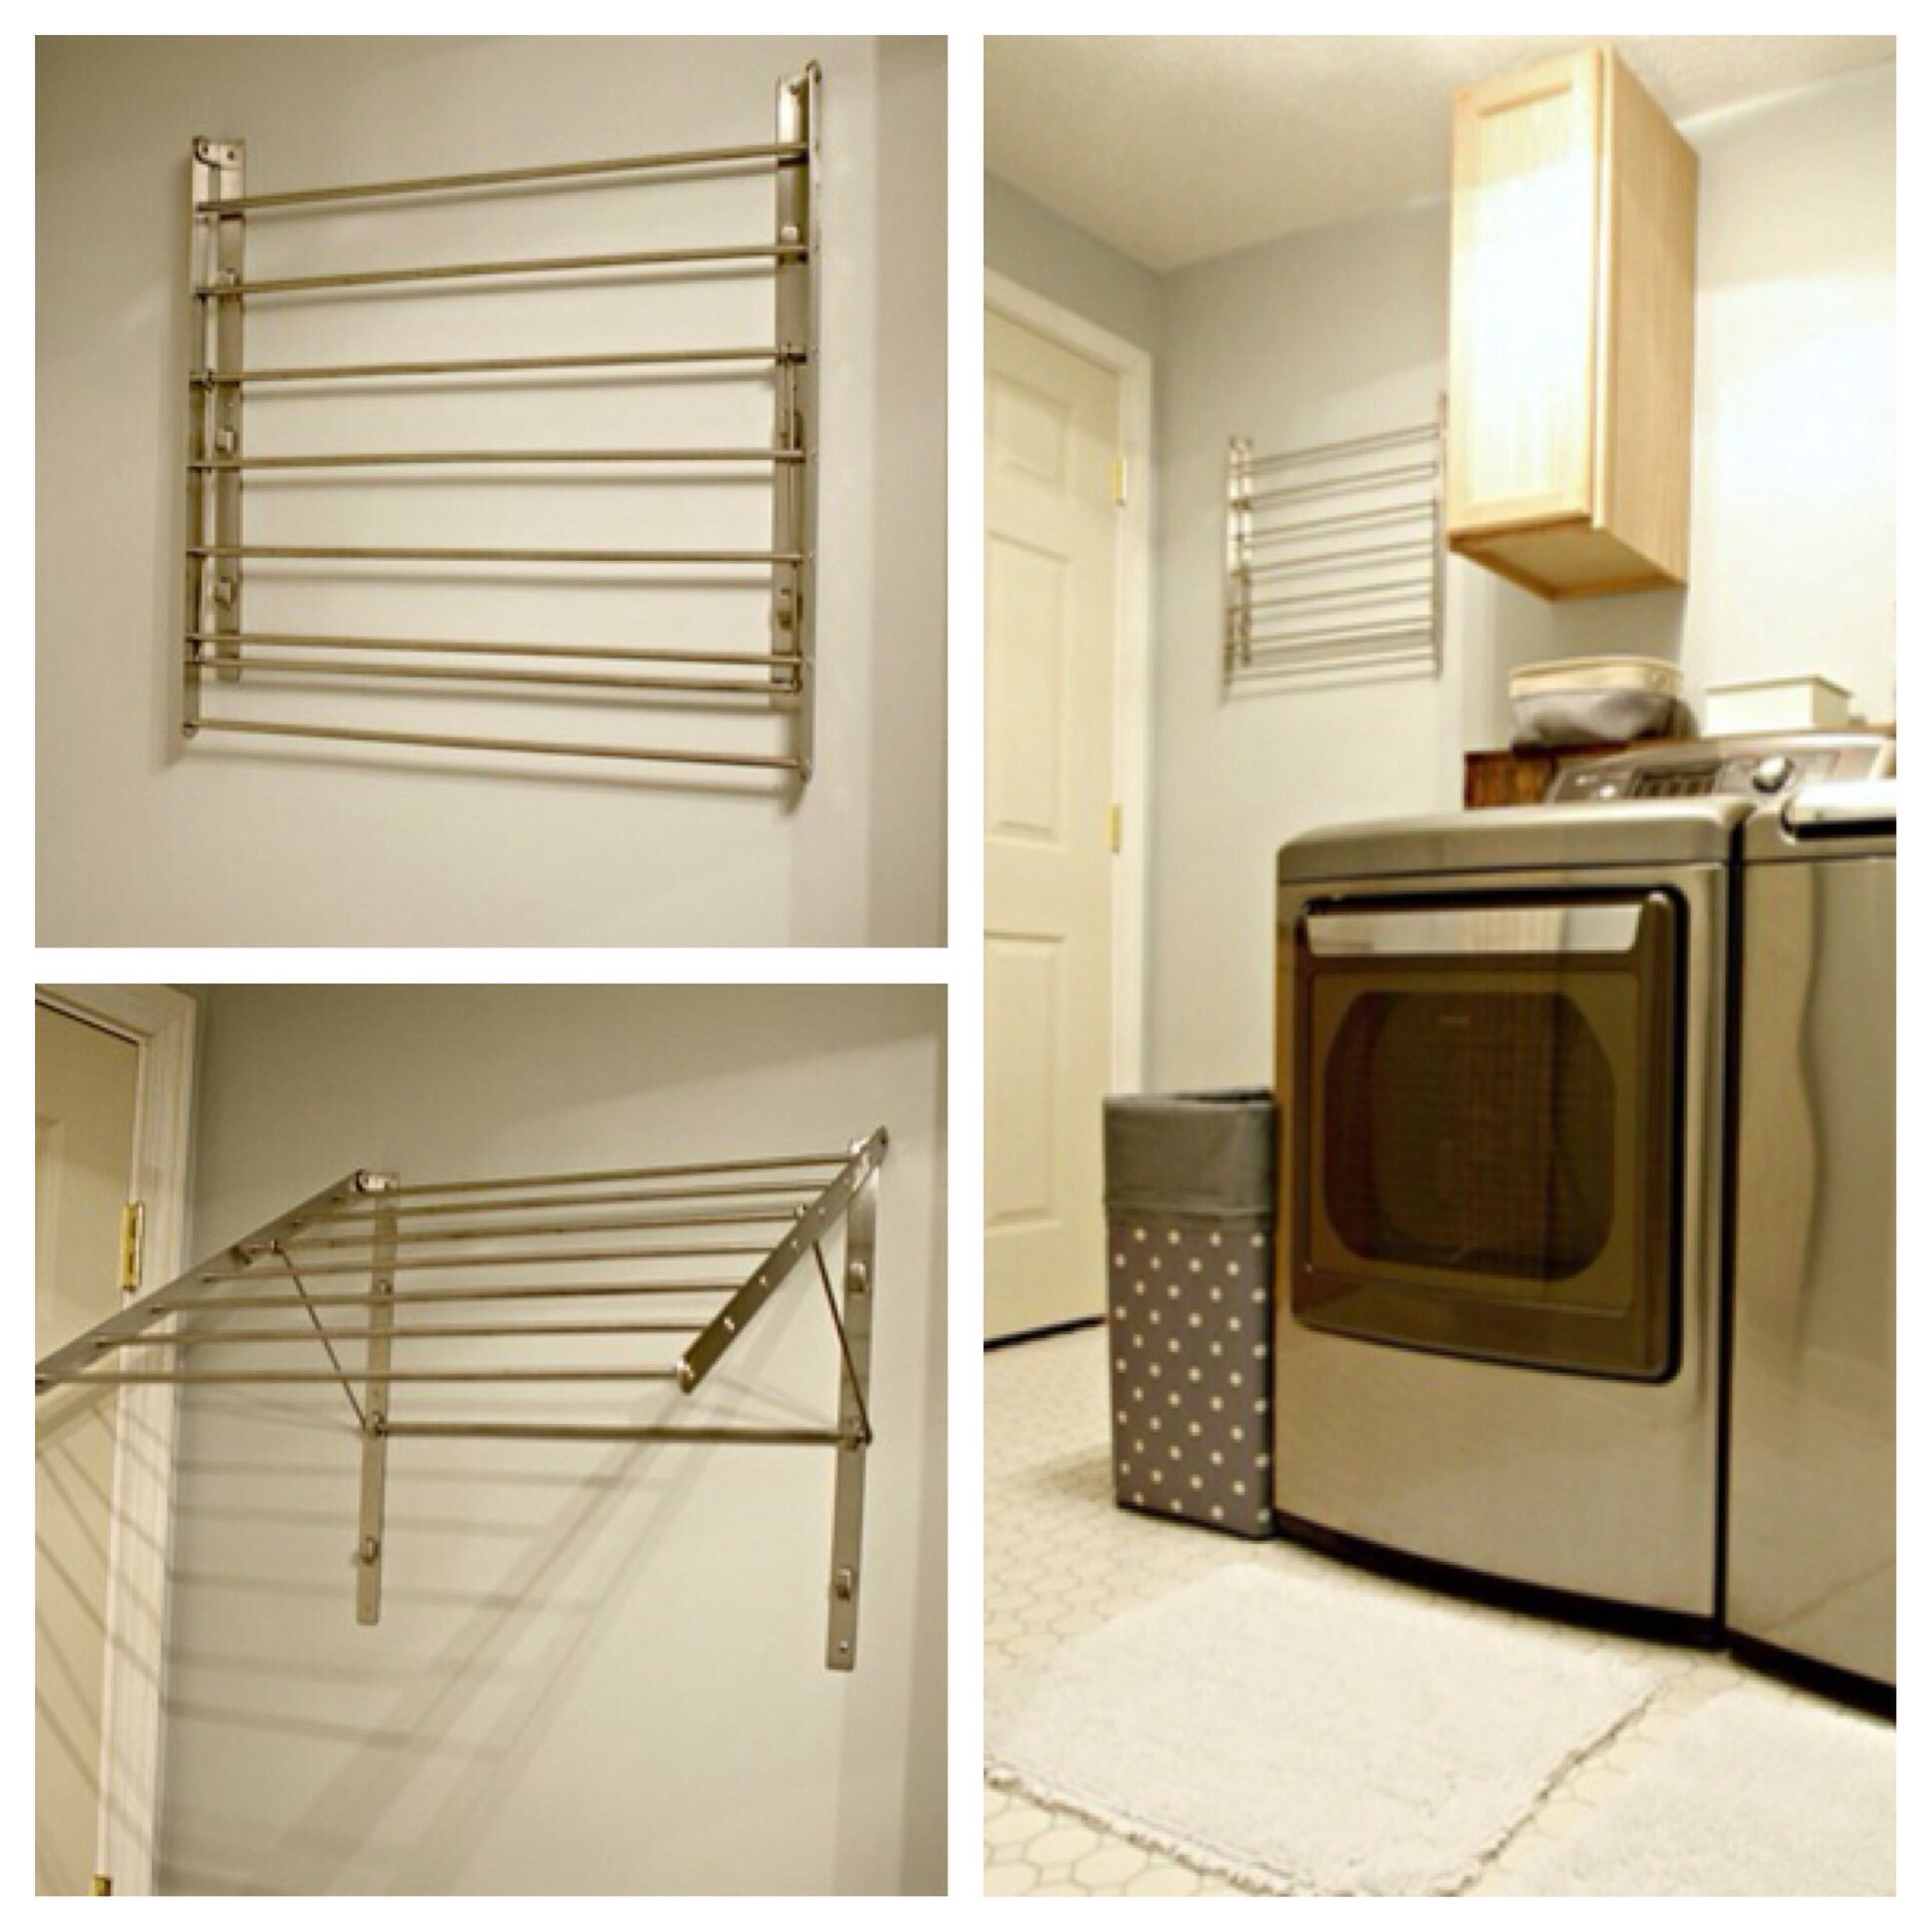 New Towel Rack And Other Updates To Our #basement #laundry